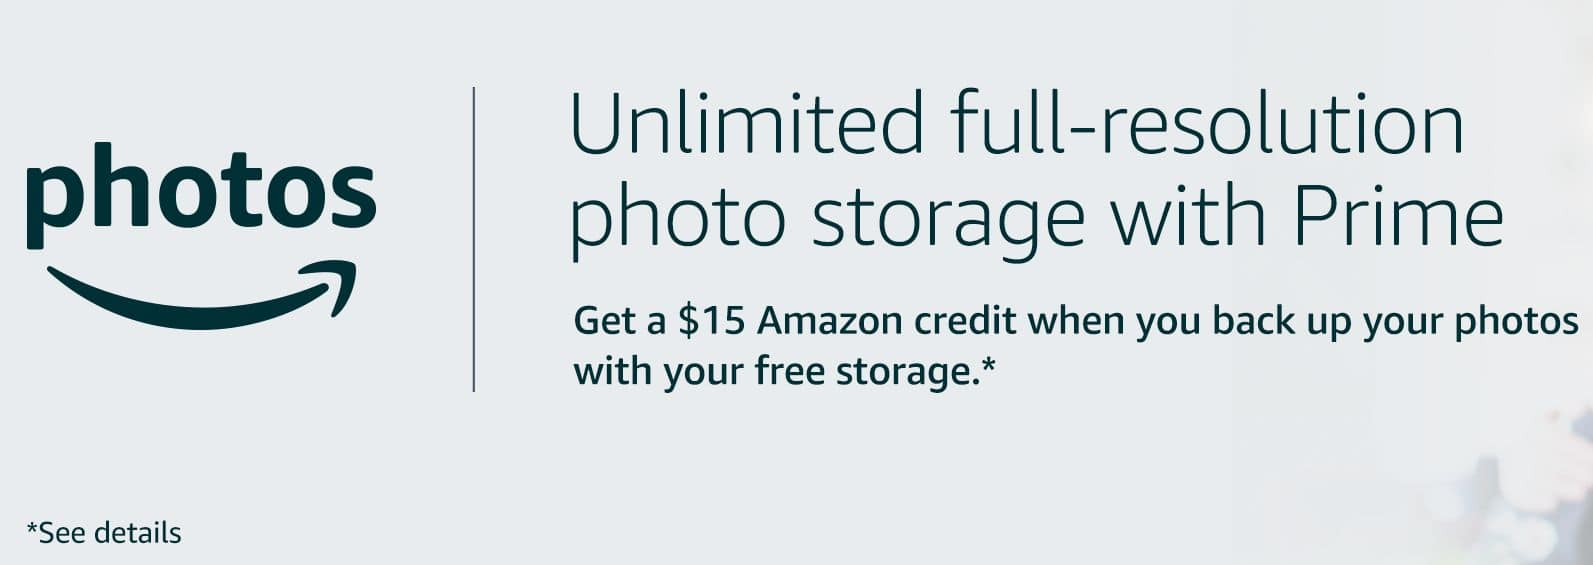 Eligible Prime Members: Get a $15 Amazon Credit (off $25+) when you backup photos with free storage on Amazon Photos. YMMV. Offer expires 8/31